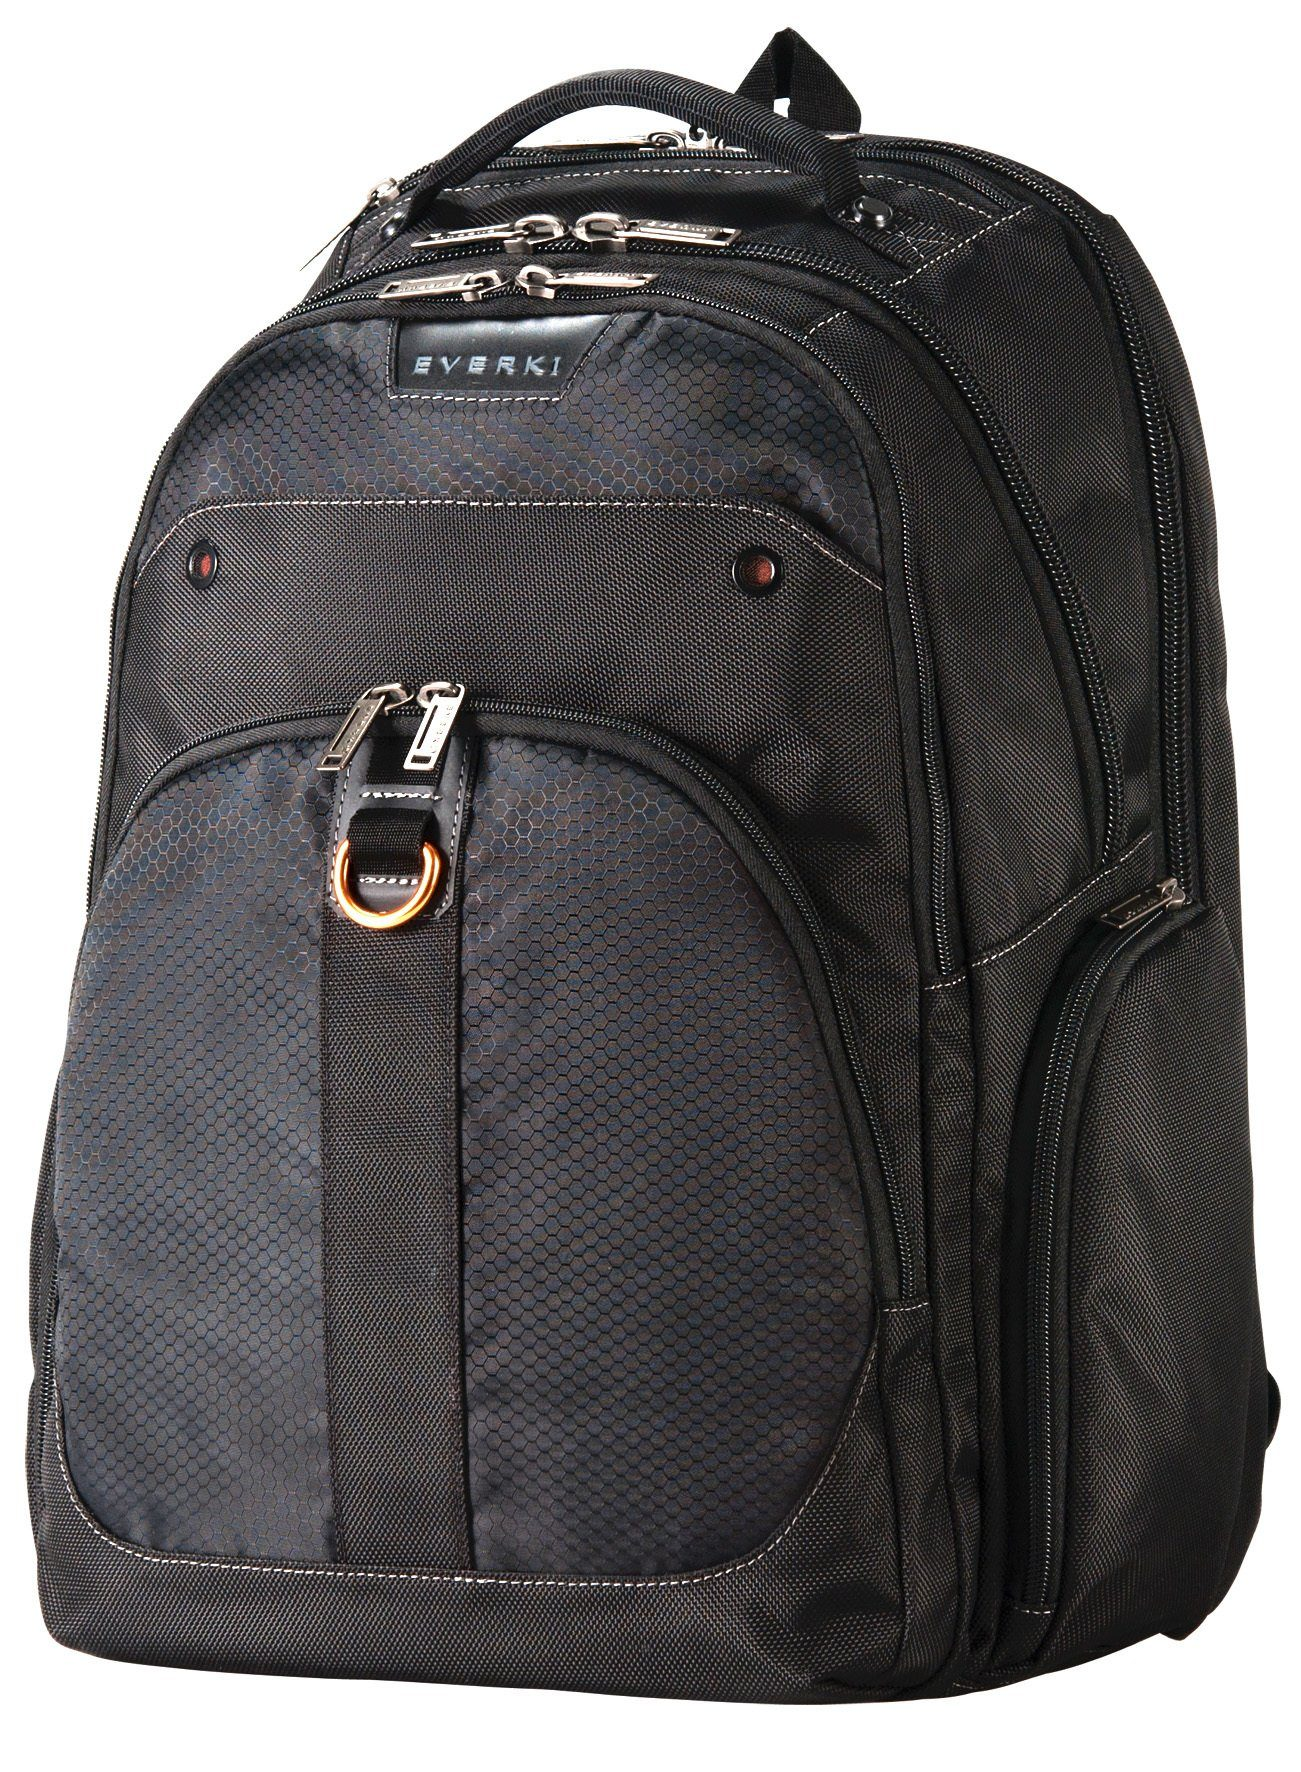 "Everki Laptop-Rucksack »Atlas 17,3""«"